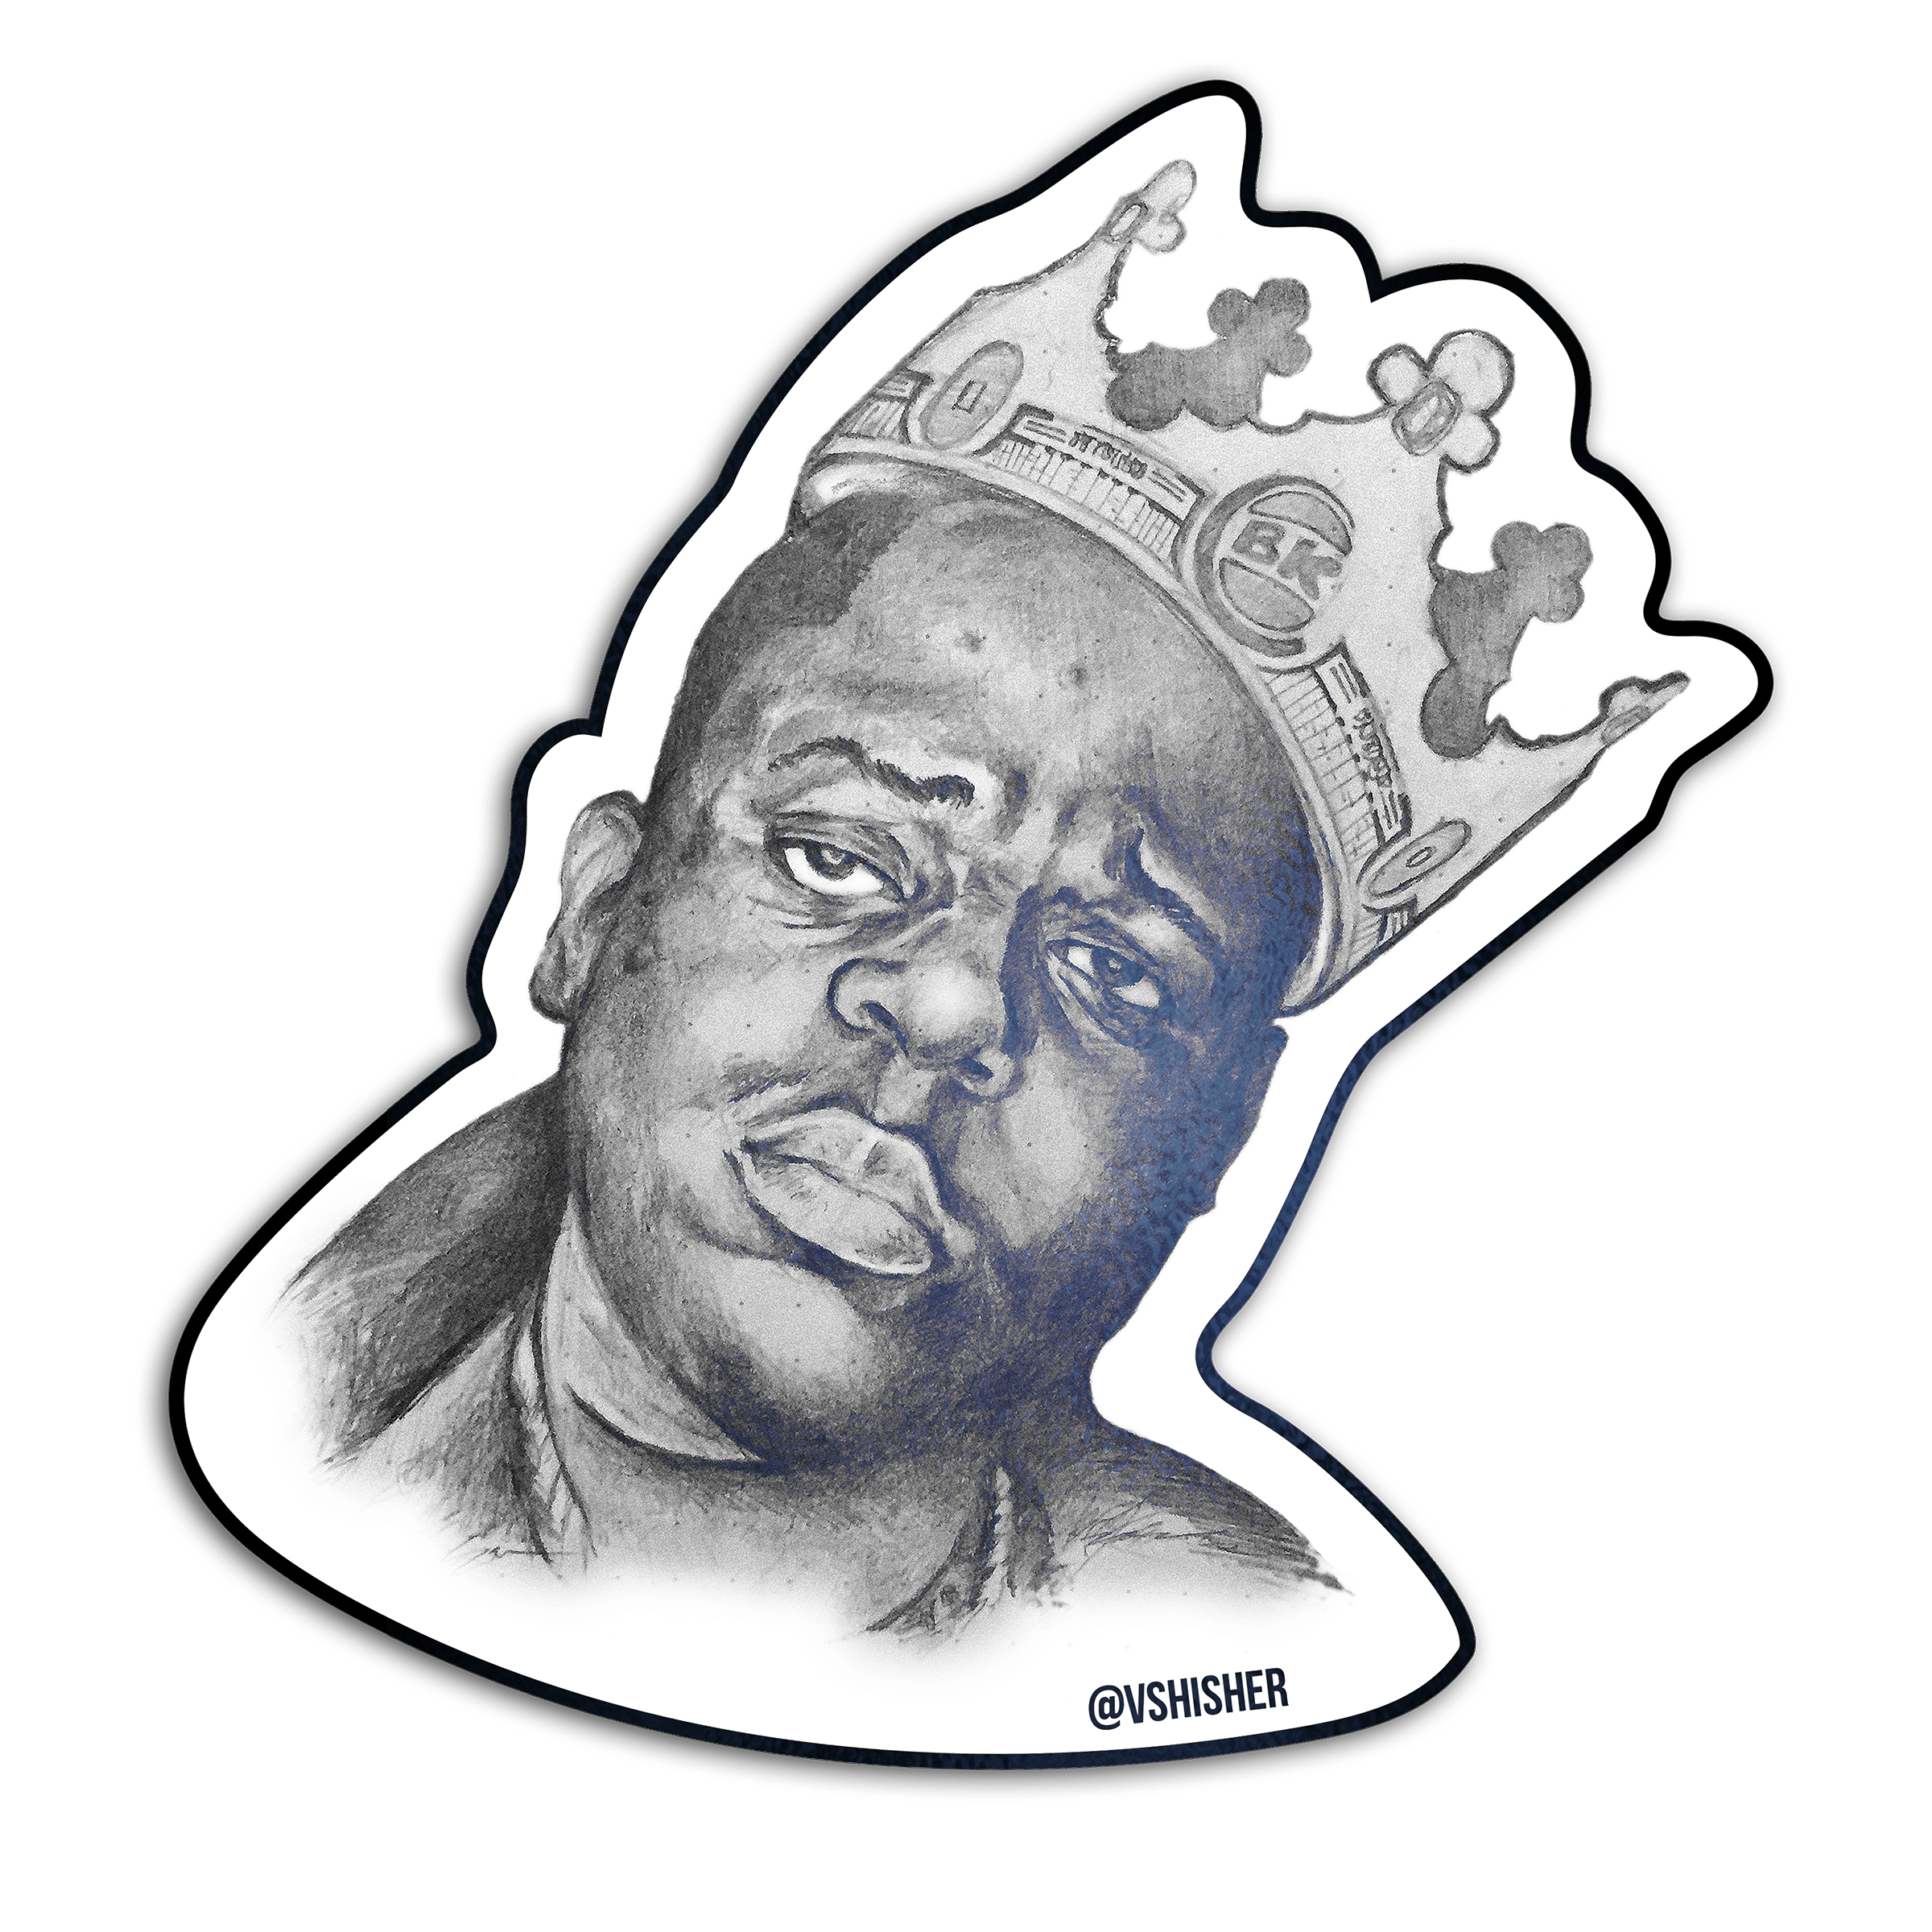 The King Of Bk The Notorious B I G Is The King Of Brooklyn And The Burger King Have It Your Way With These Biggie Smalls Stic Biggie Smalls Notorious Big Art